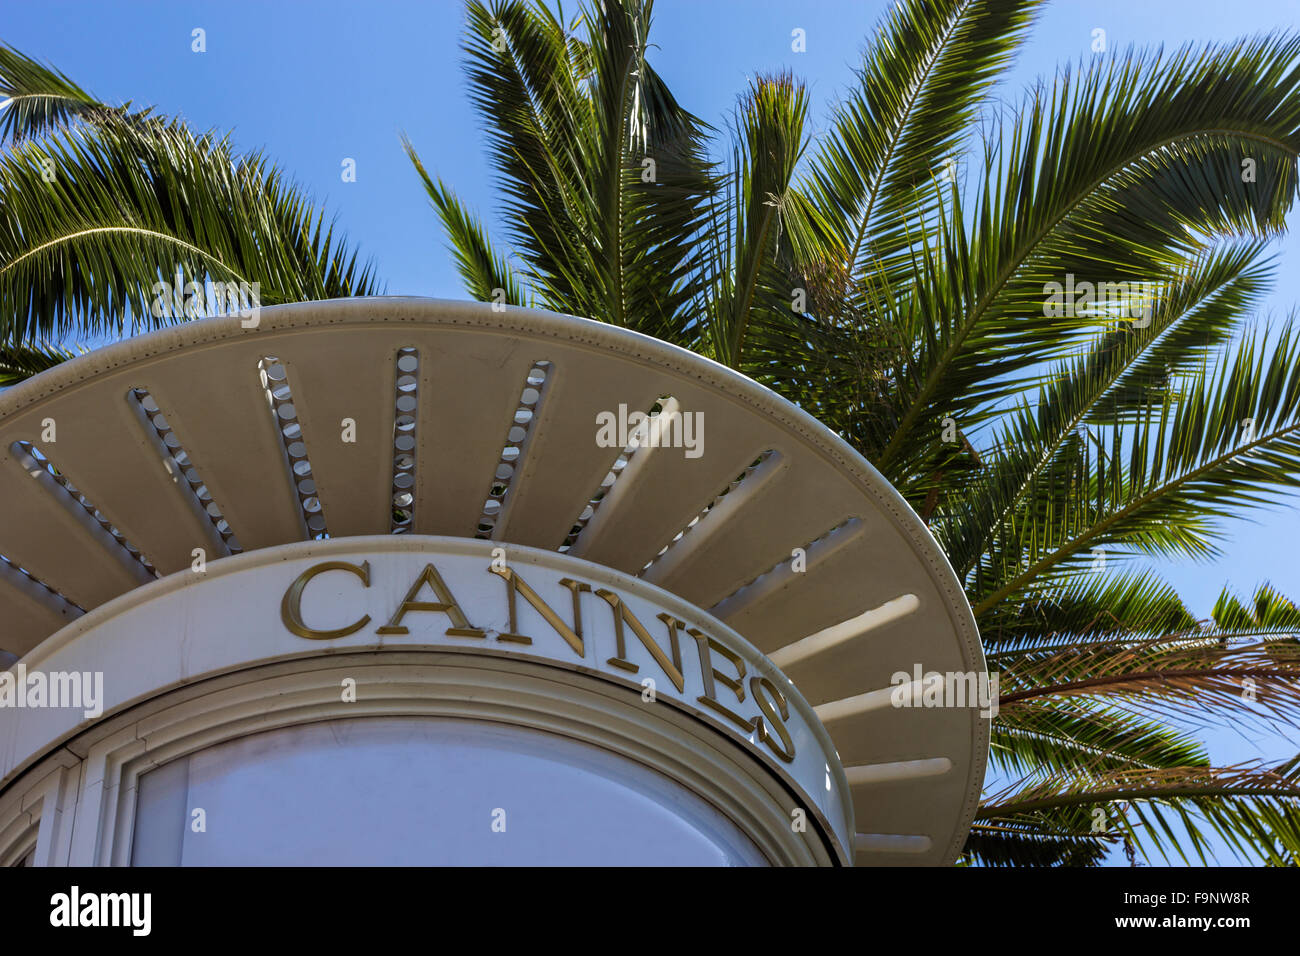 Cannes on French Riviera - Stock Image